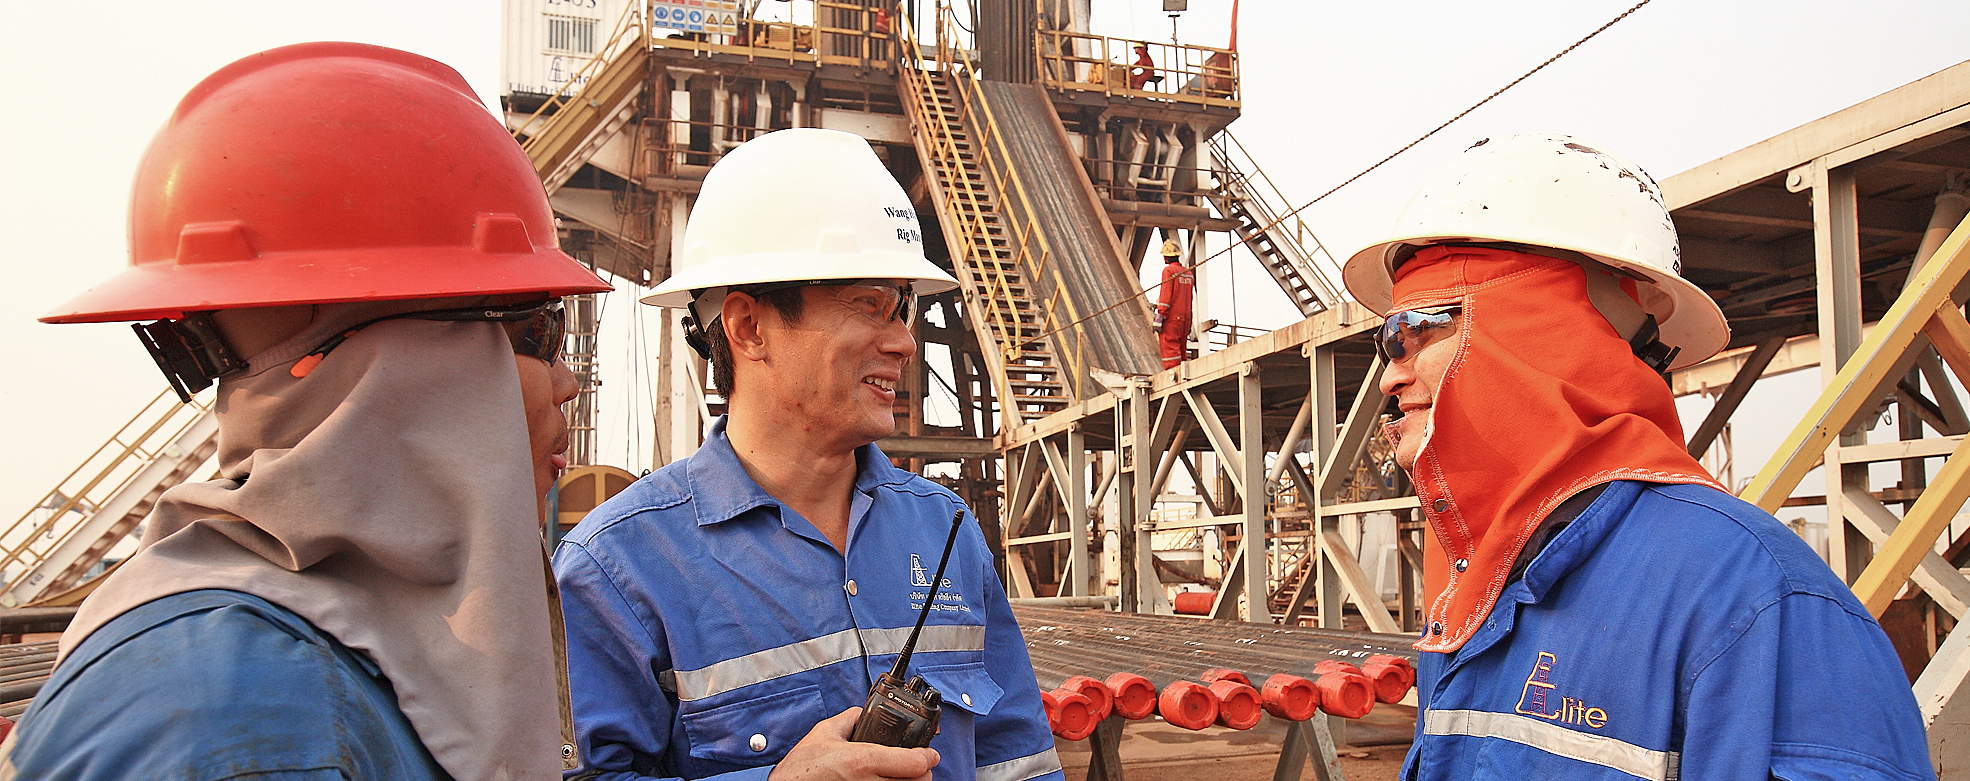 Elite Drilling Company Limited